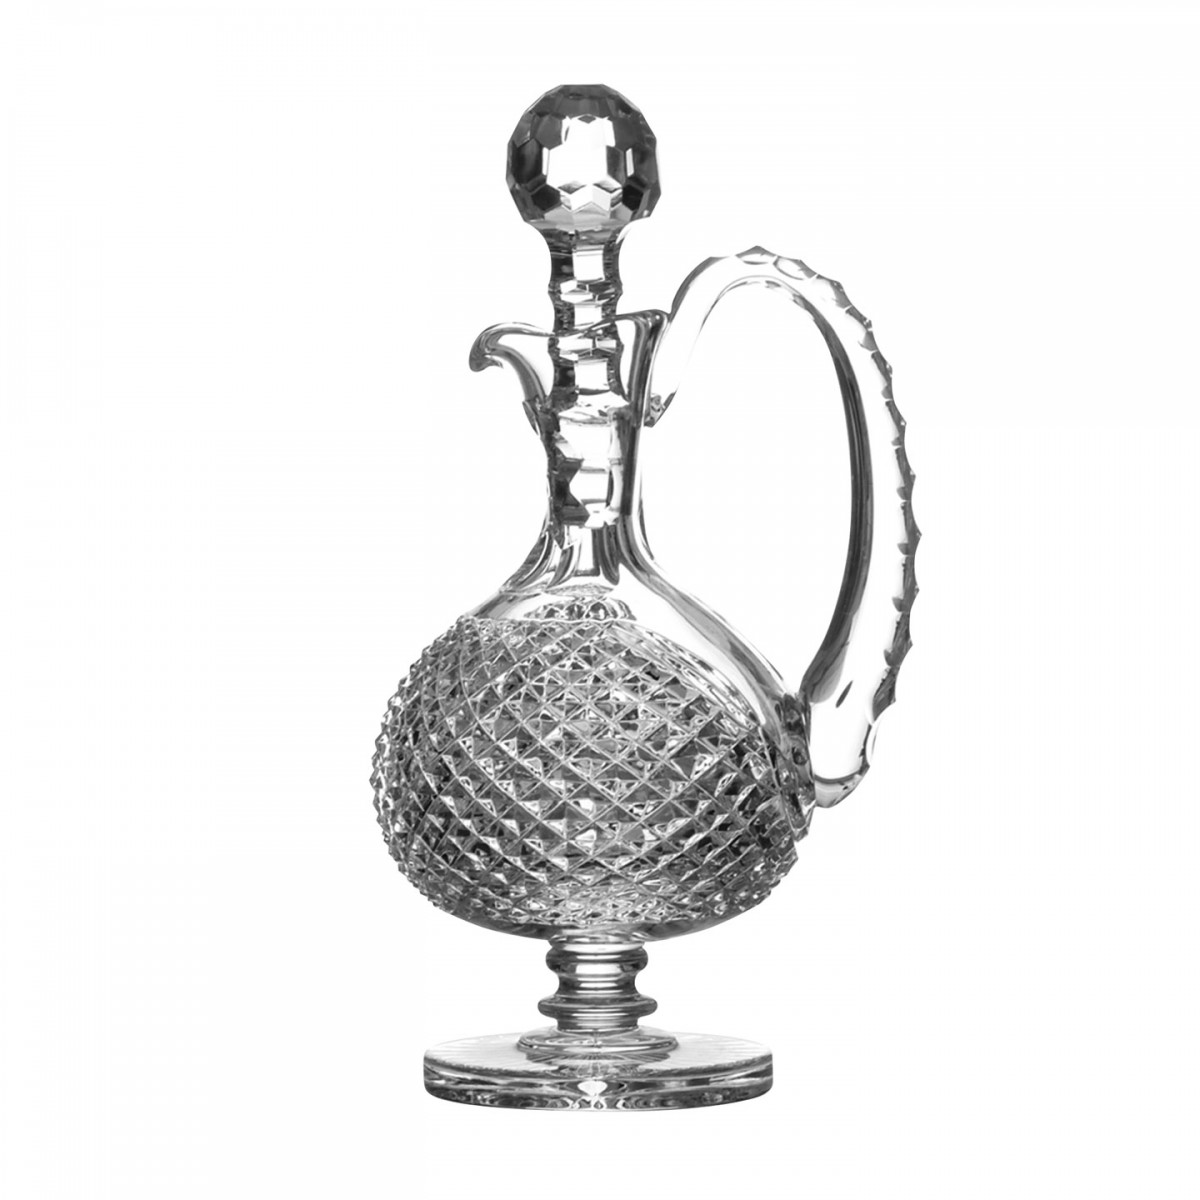 Astonishing waterford crystal decanter waterford crystal lismore for dining display serveware ideas